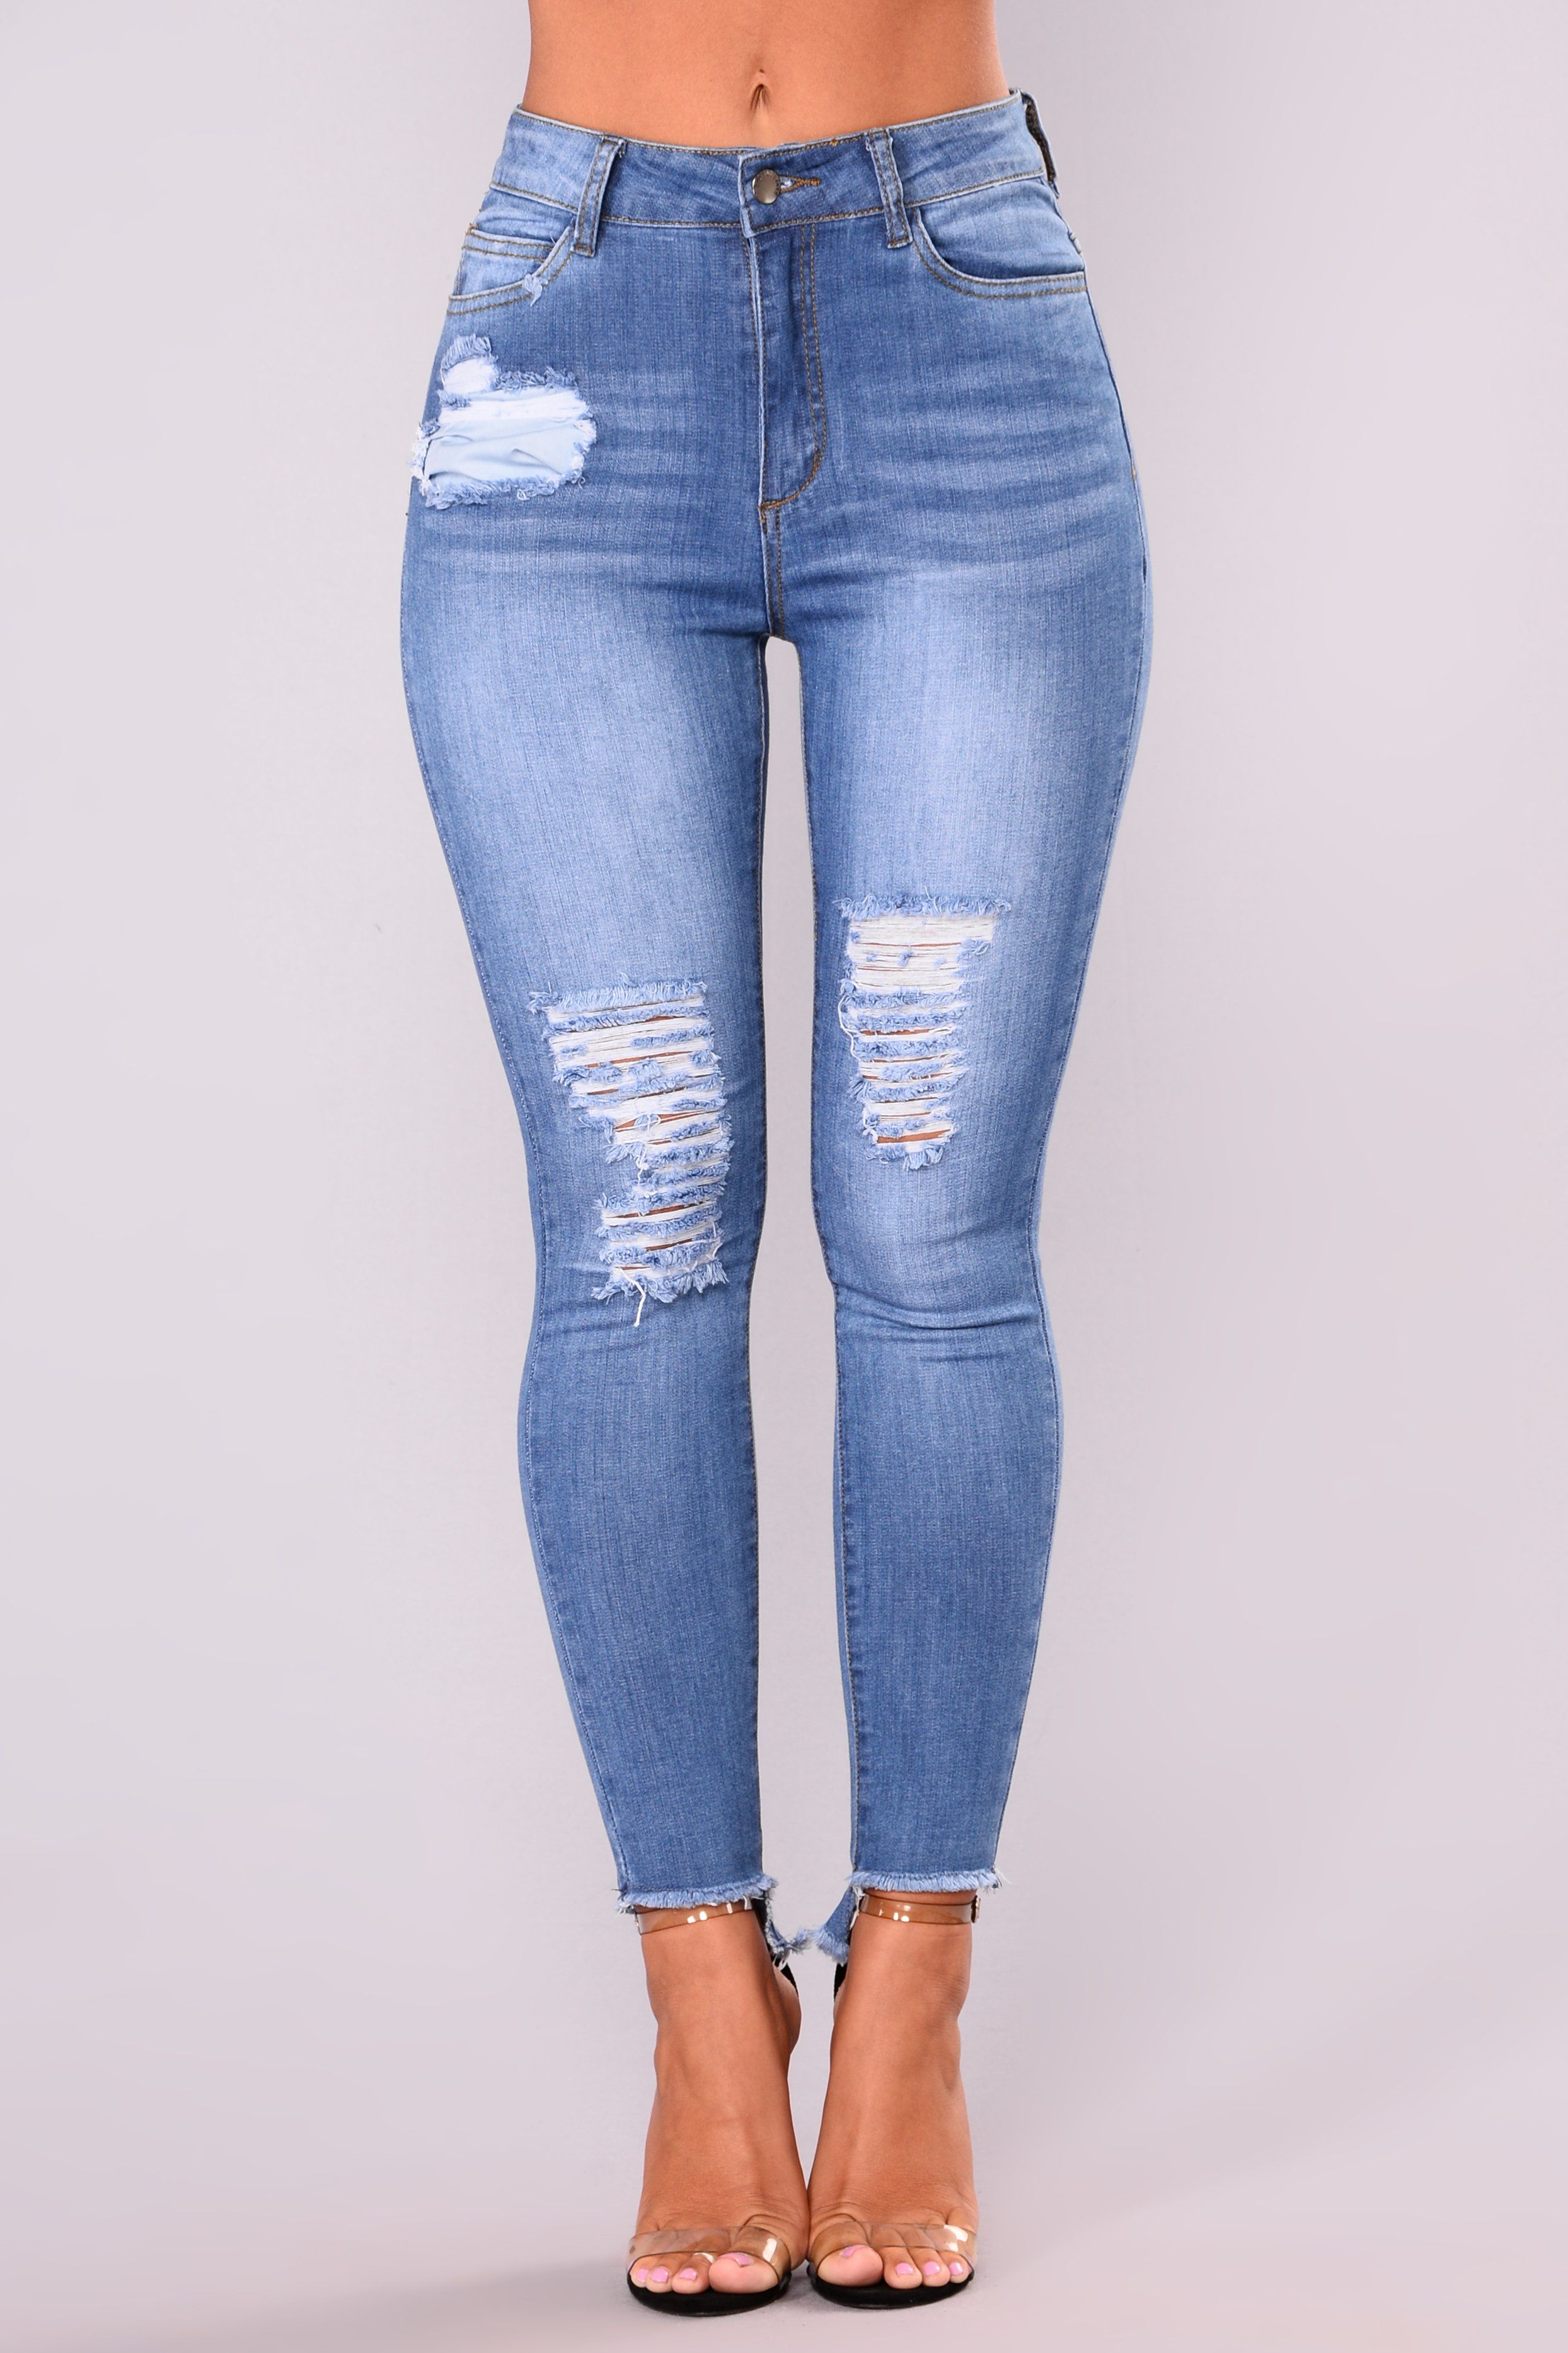 fca5ec76755 Carli Distress Jeans - Medium Blue | Clothes! | Jeans, High waisted ...